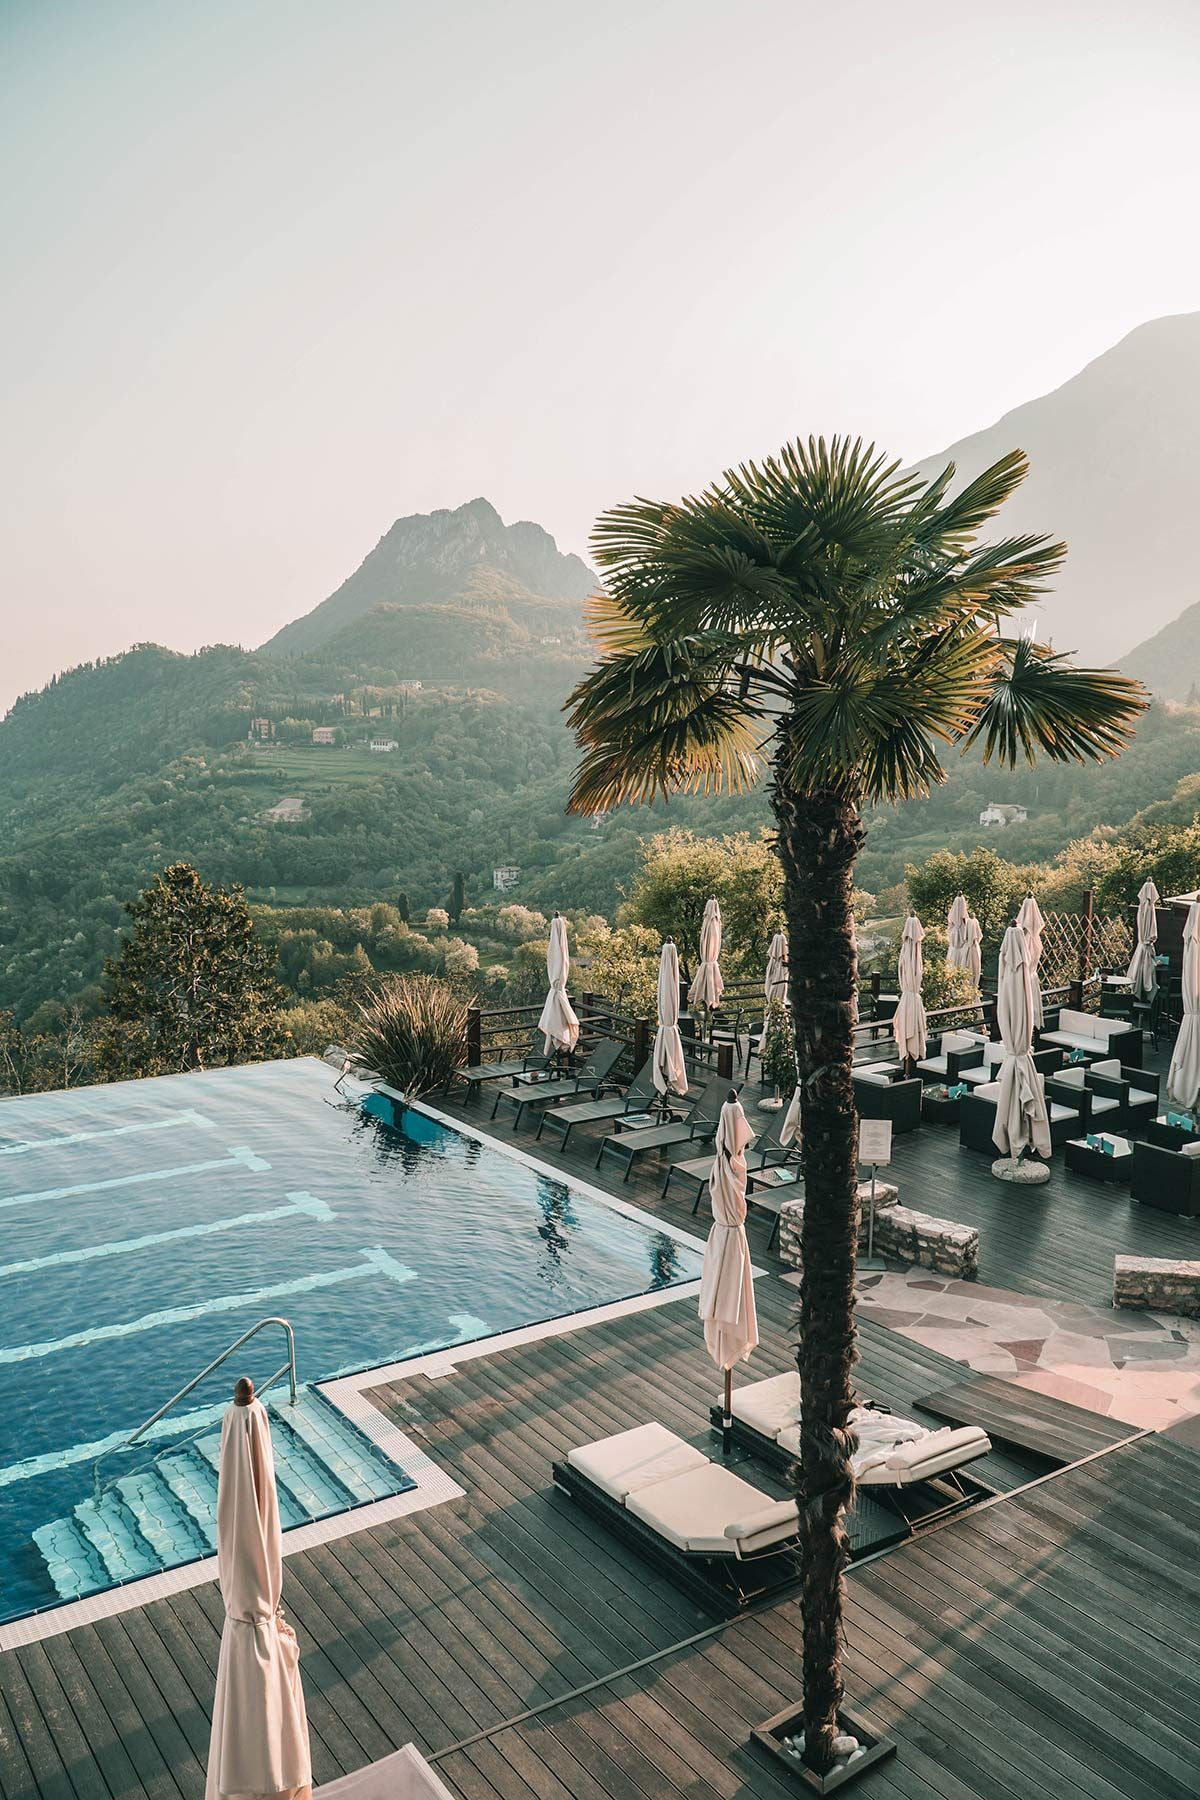 This is how peace feels – visiting the most beautiful hotel on Lake Garda